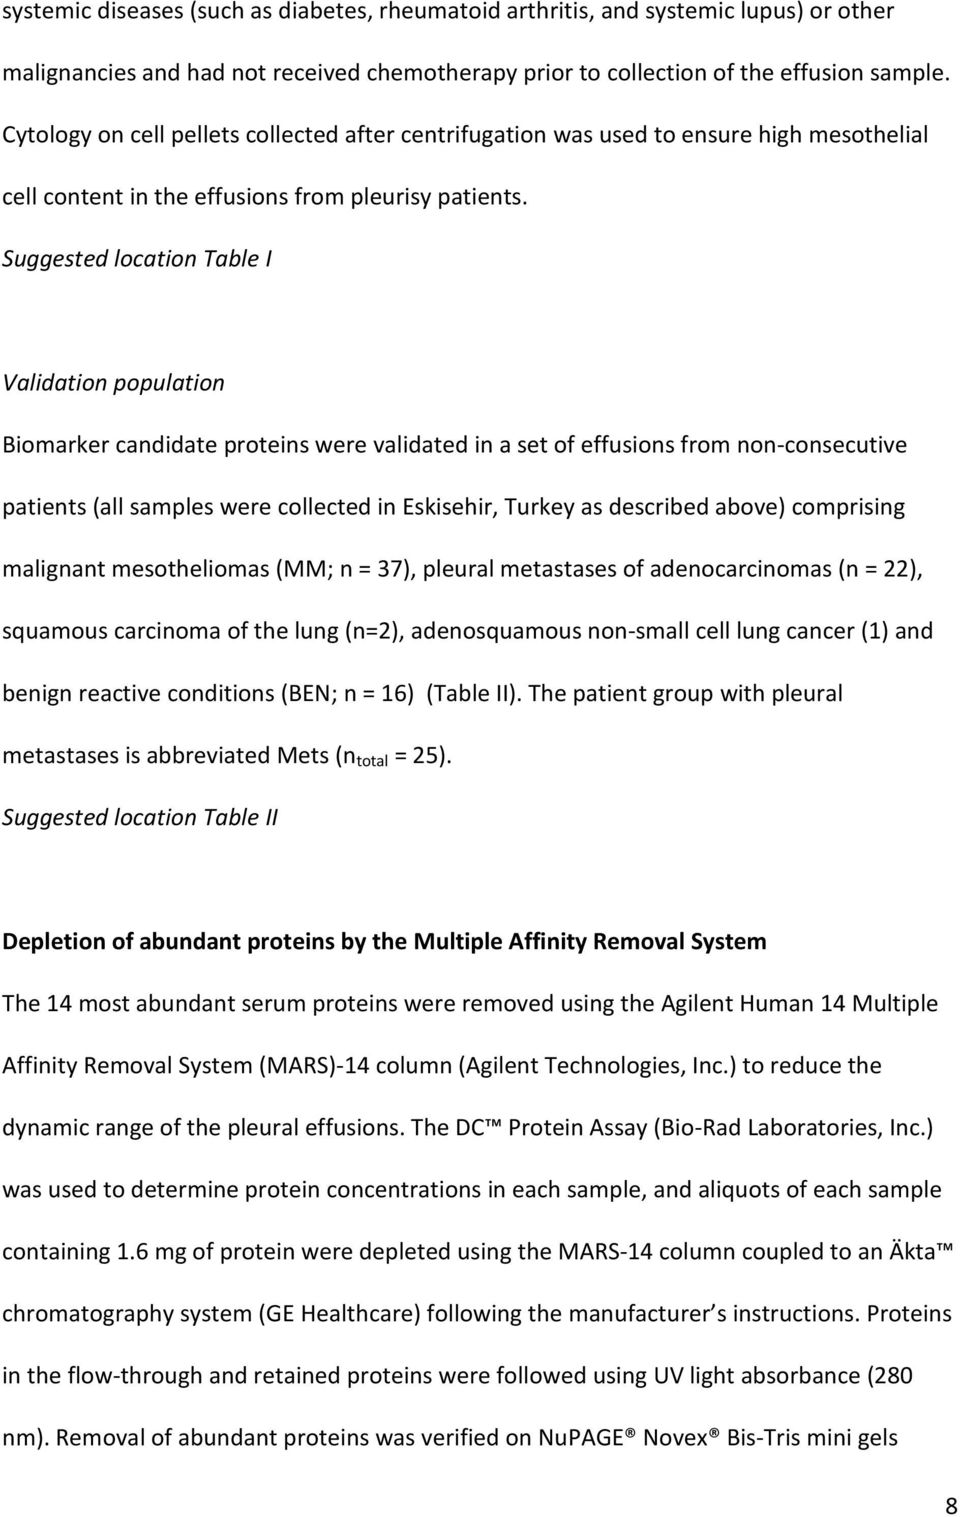 Suggested location Table I Validation population Biomarker candidate proteins were validated in a set of effusions from non-consecutive patients (all samples were collected in Eskisehir, Turkey as